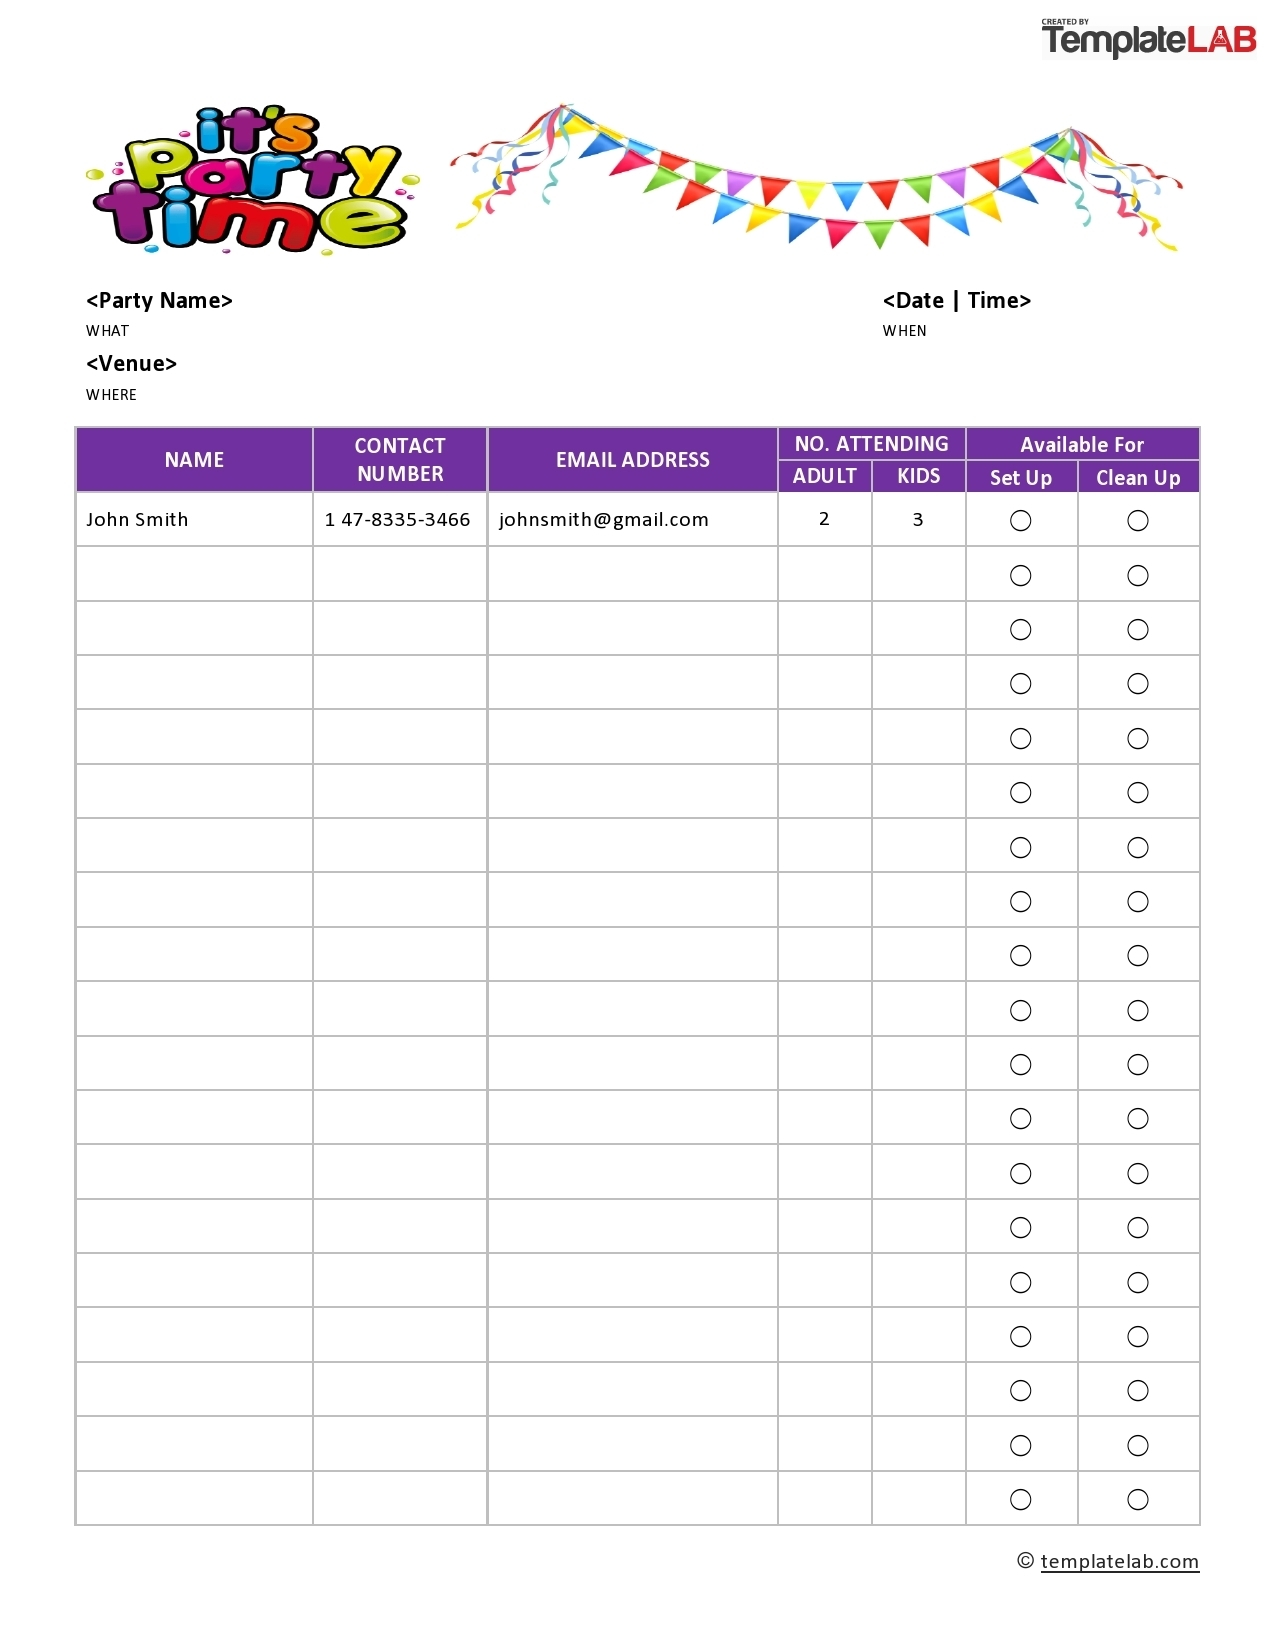 Take Time Slot Sign Up Sheet Template Excel